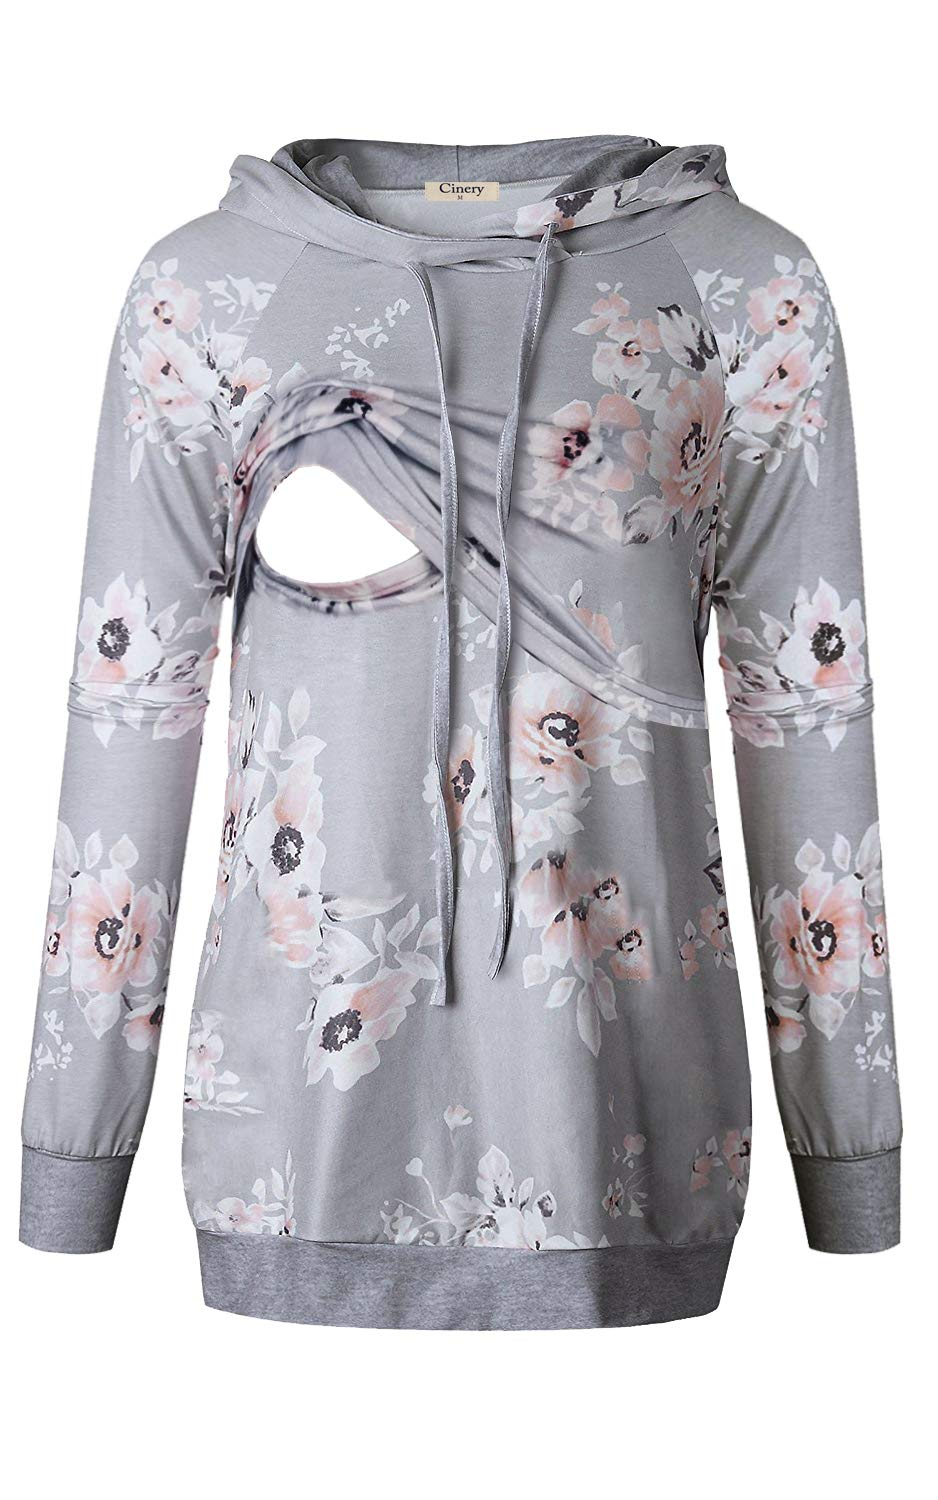 Cinery Nursing Tops Women, Ladies 2 in 1 Style V-Neck Long Sleeve Pullover Hoodies Banded Bottom Post-partum Sweatshirts Blouses Top for Juniors (Floral Grey XXL)